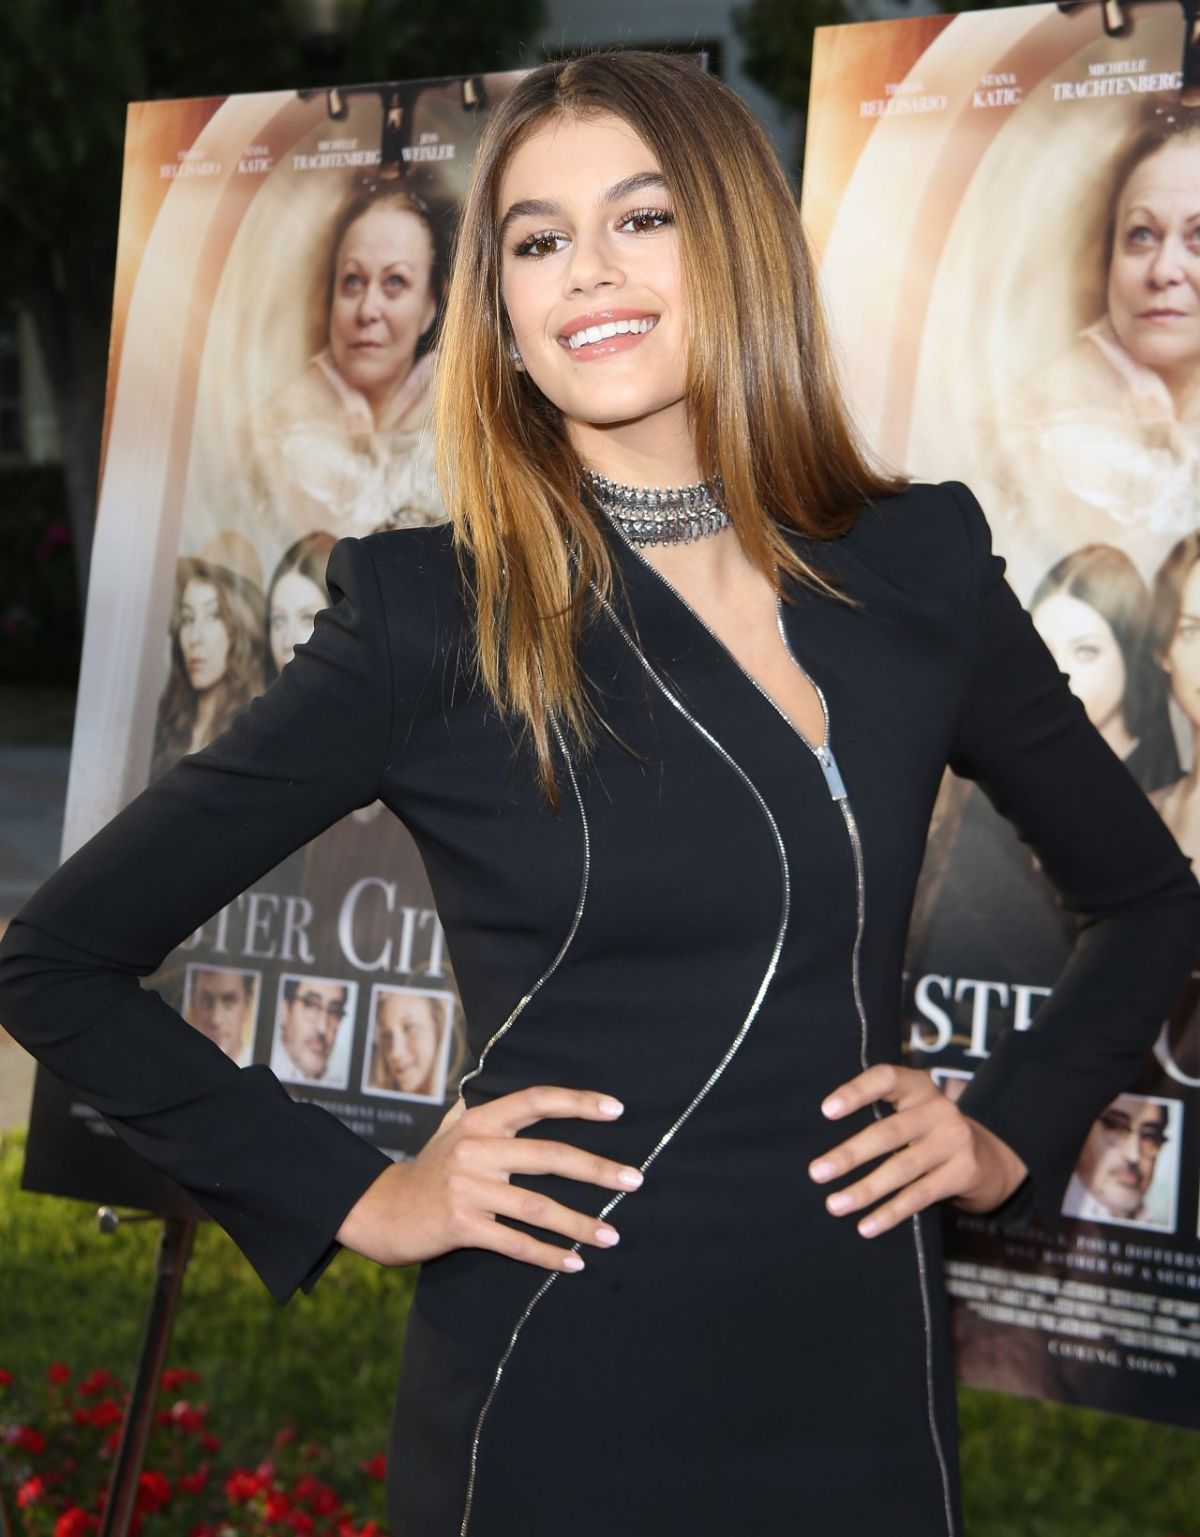 4K Photos of Kaia Gerber at Sister Cities Los Angeles Premiere